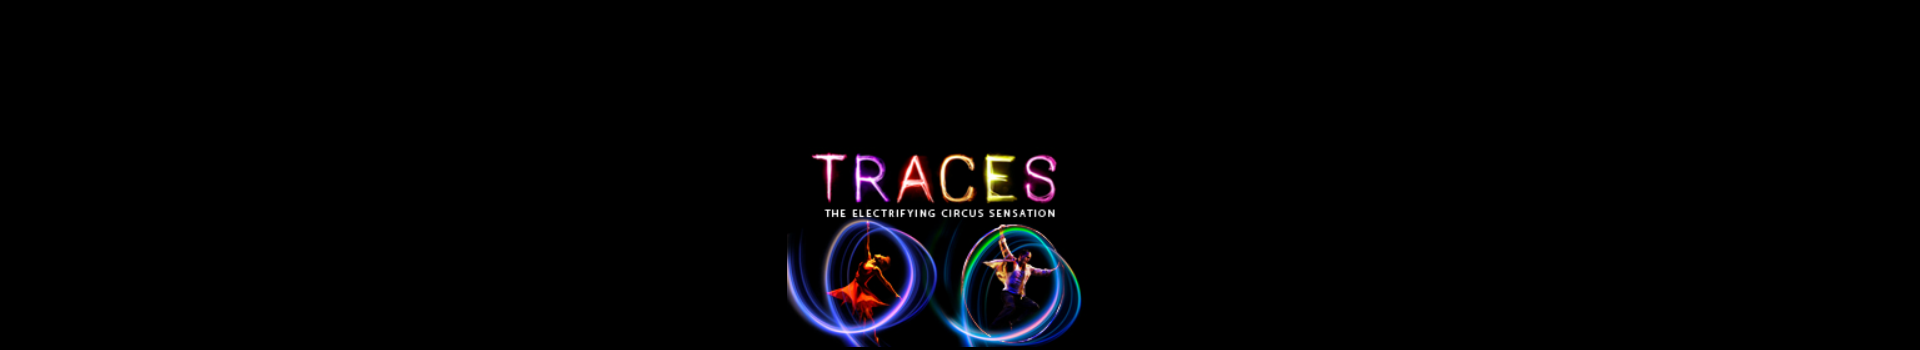 Traces tickets London Peacock Theatre